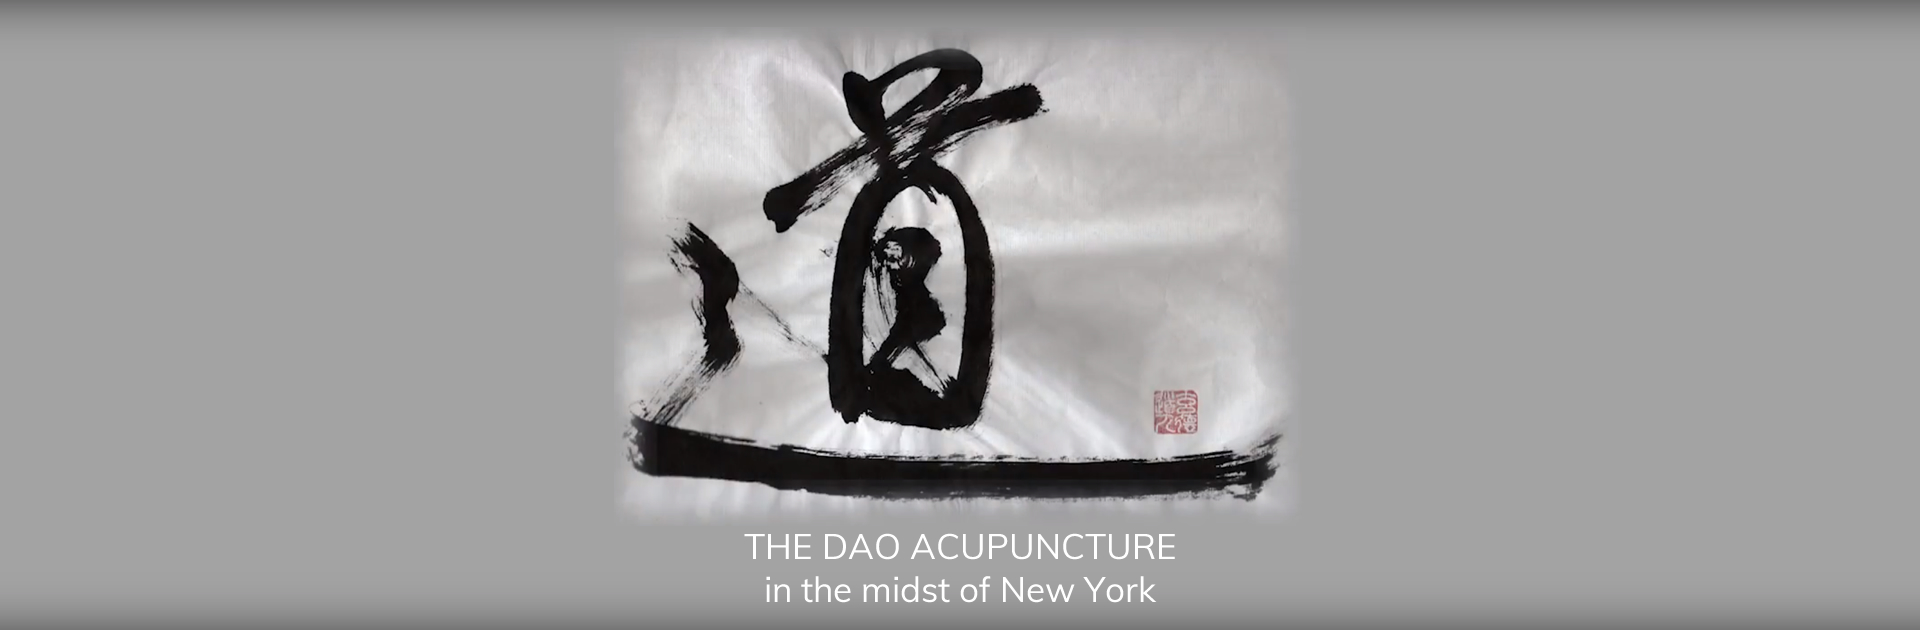 Schedule Regular Treatments with The Dao Acupuncture